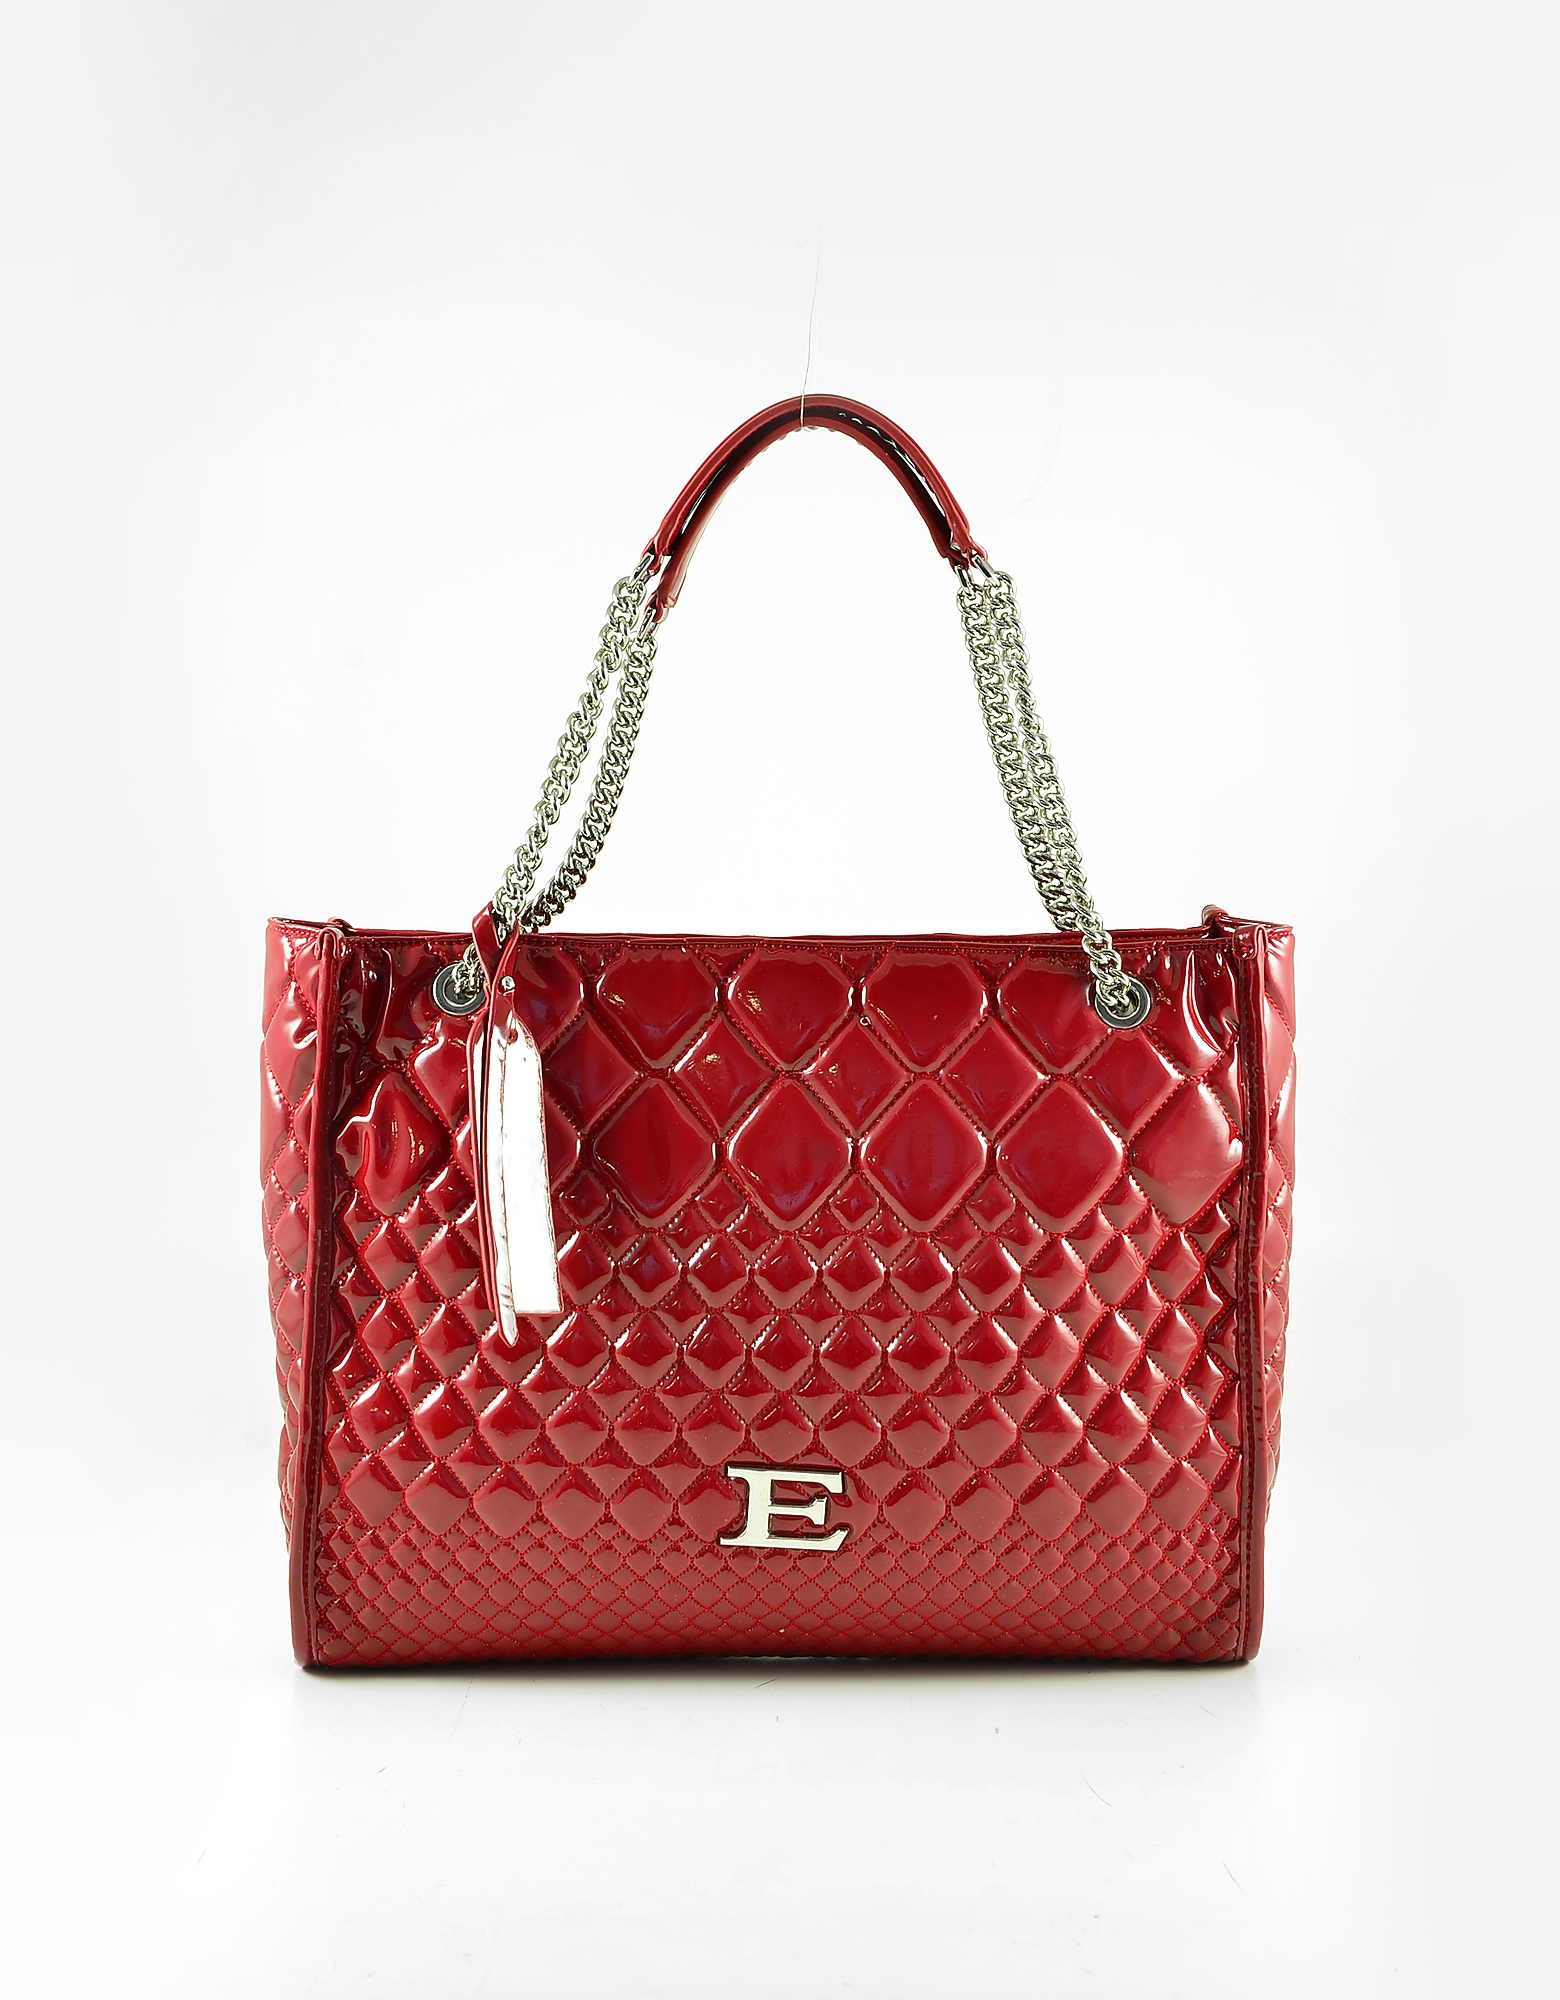 Ermanno Scervino Red Quilted Patent Eco-leather Tote Bag